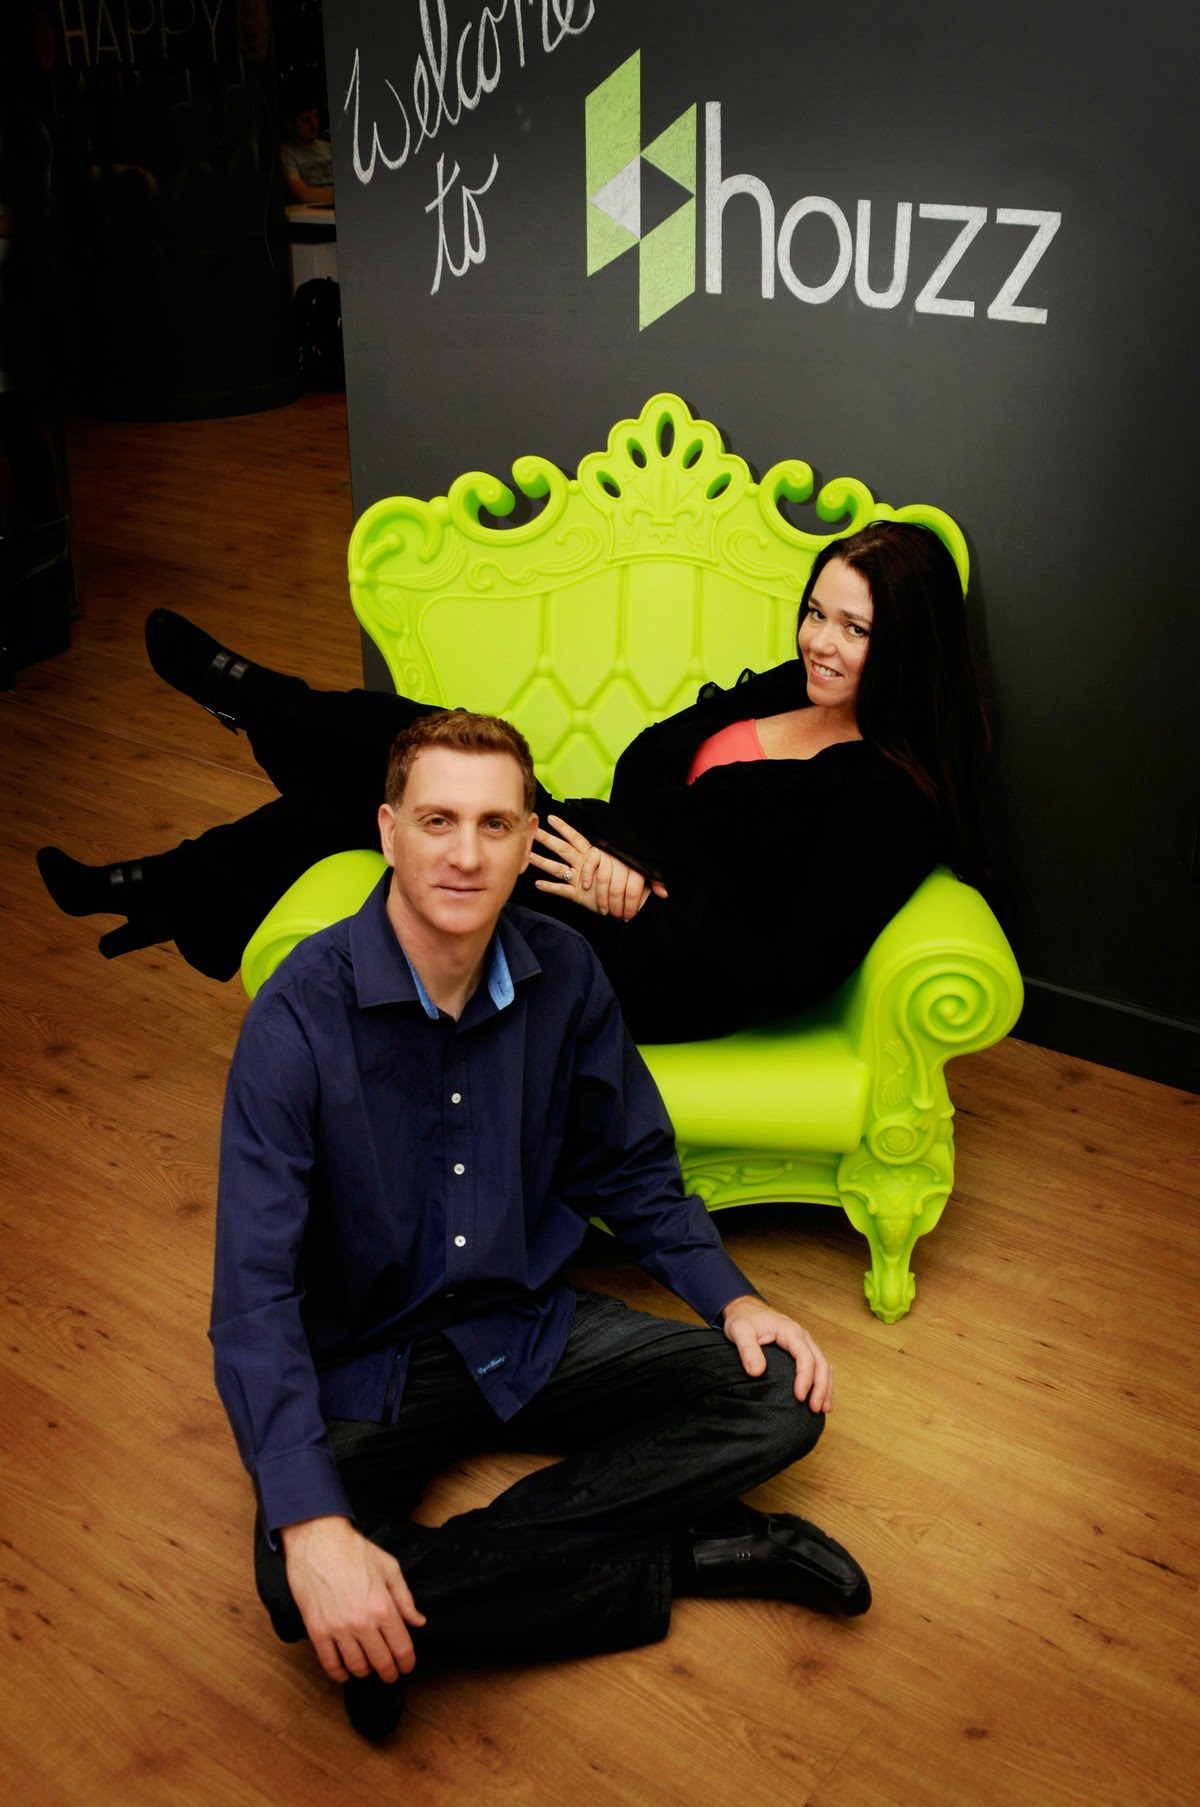 The Amazing Rise of Home Design Website Houzz, Now Valued At $2 Billion